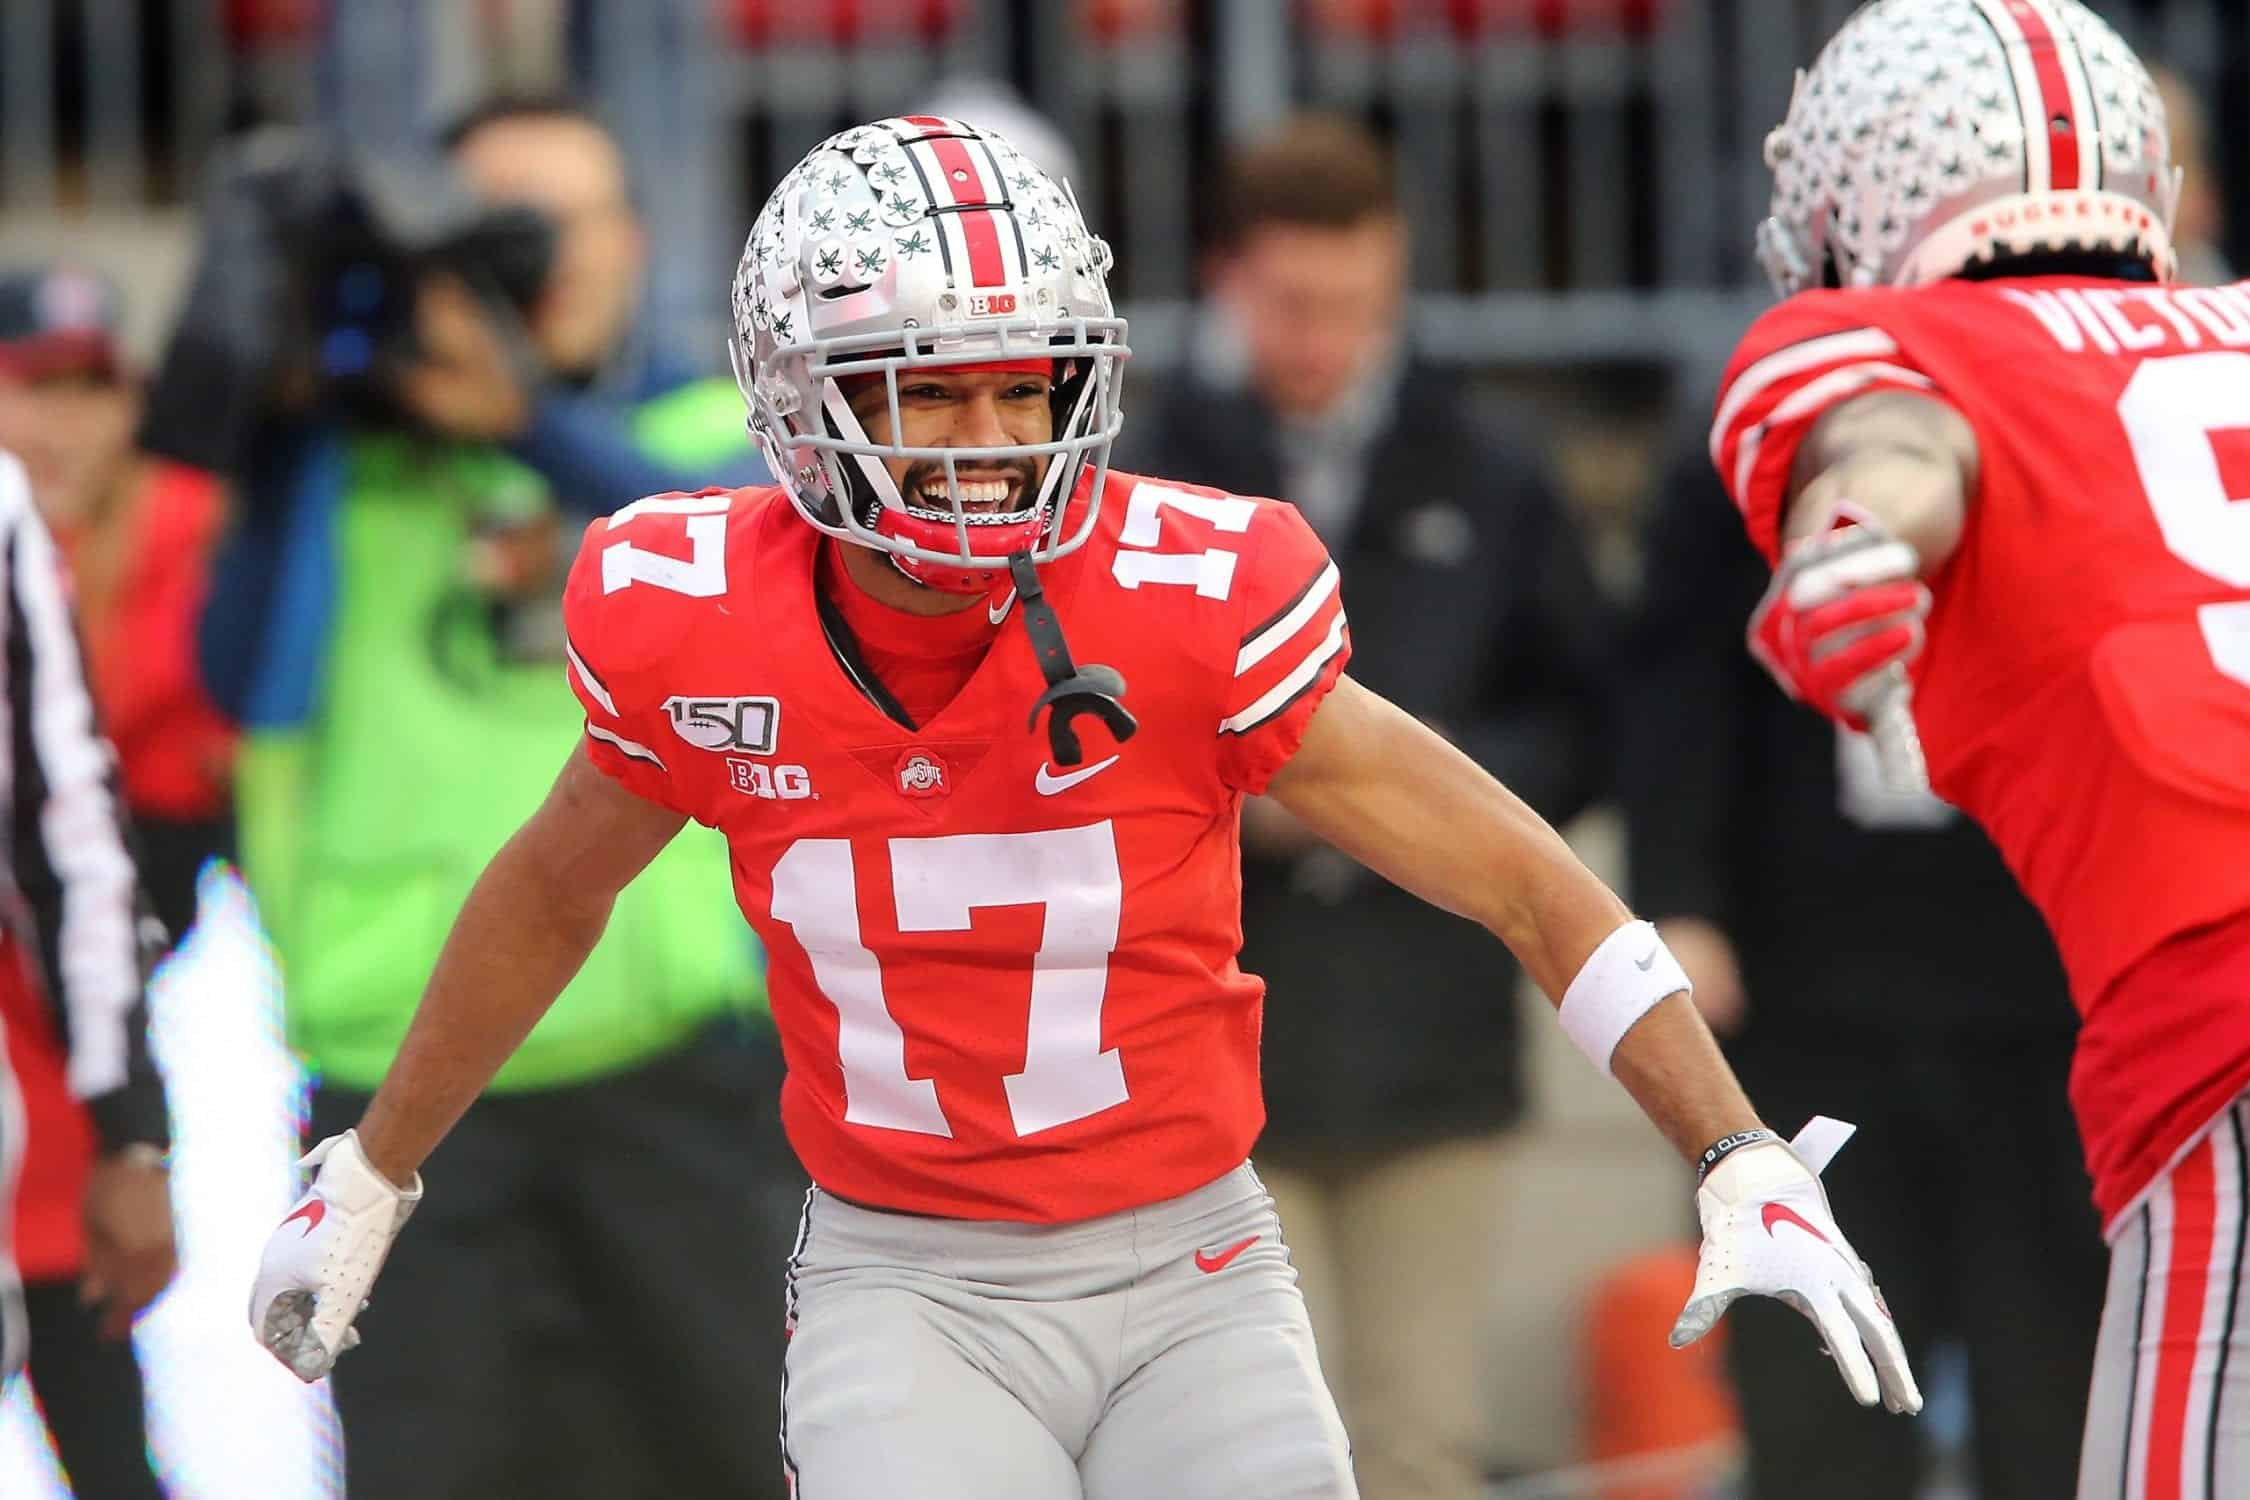 Buckeyes wide receiver Chris Olave is primed for greatness